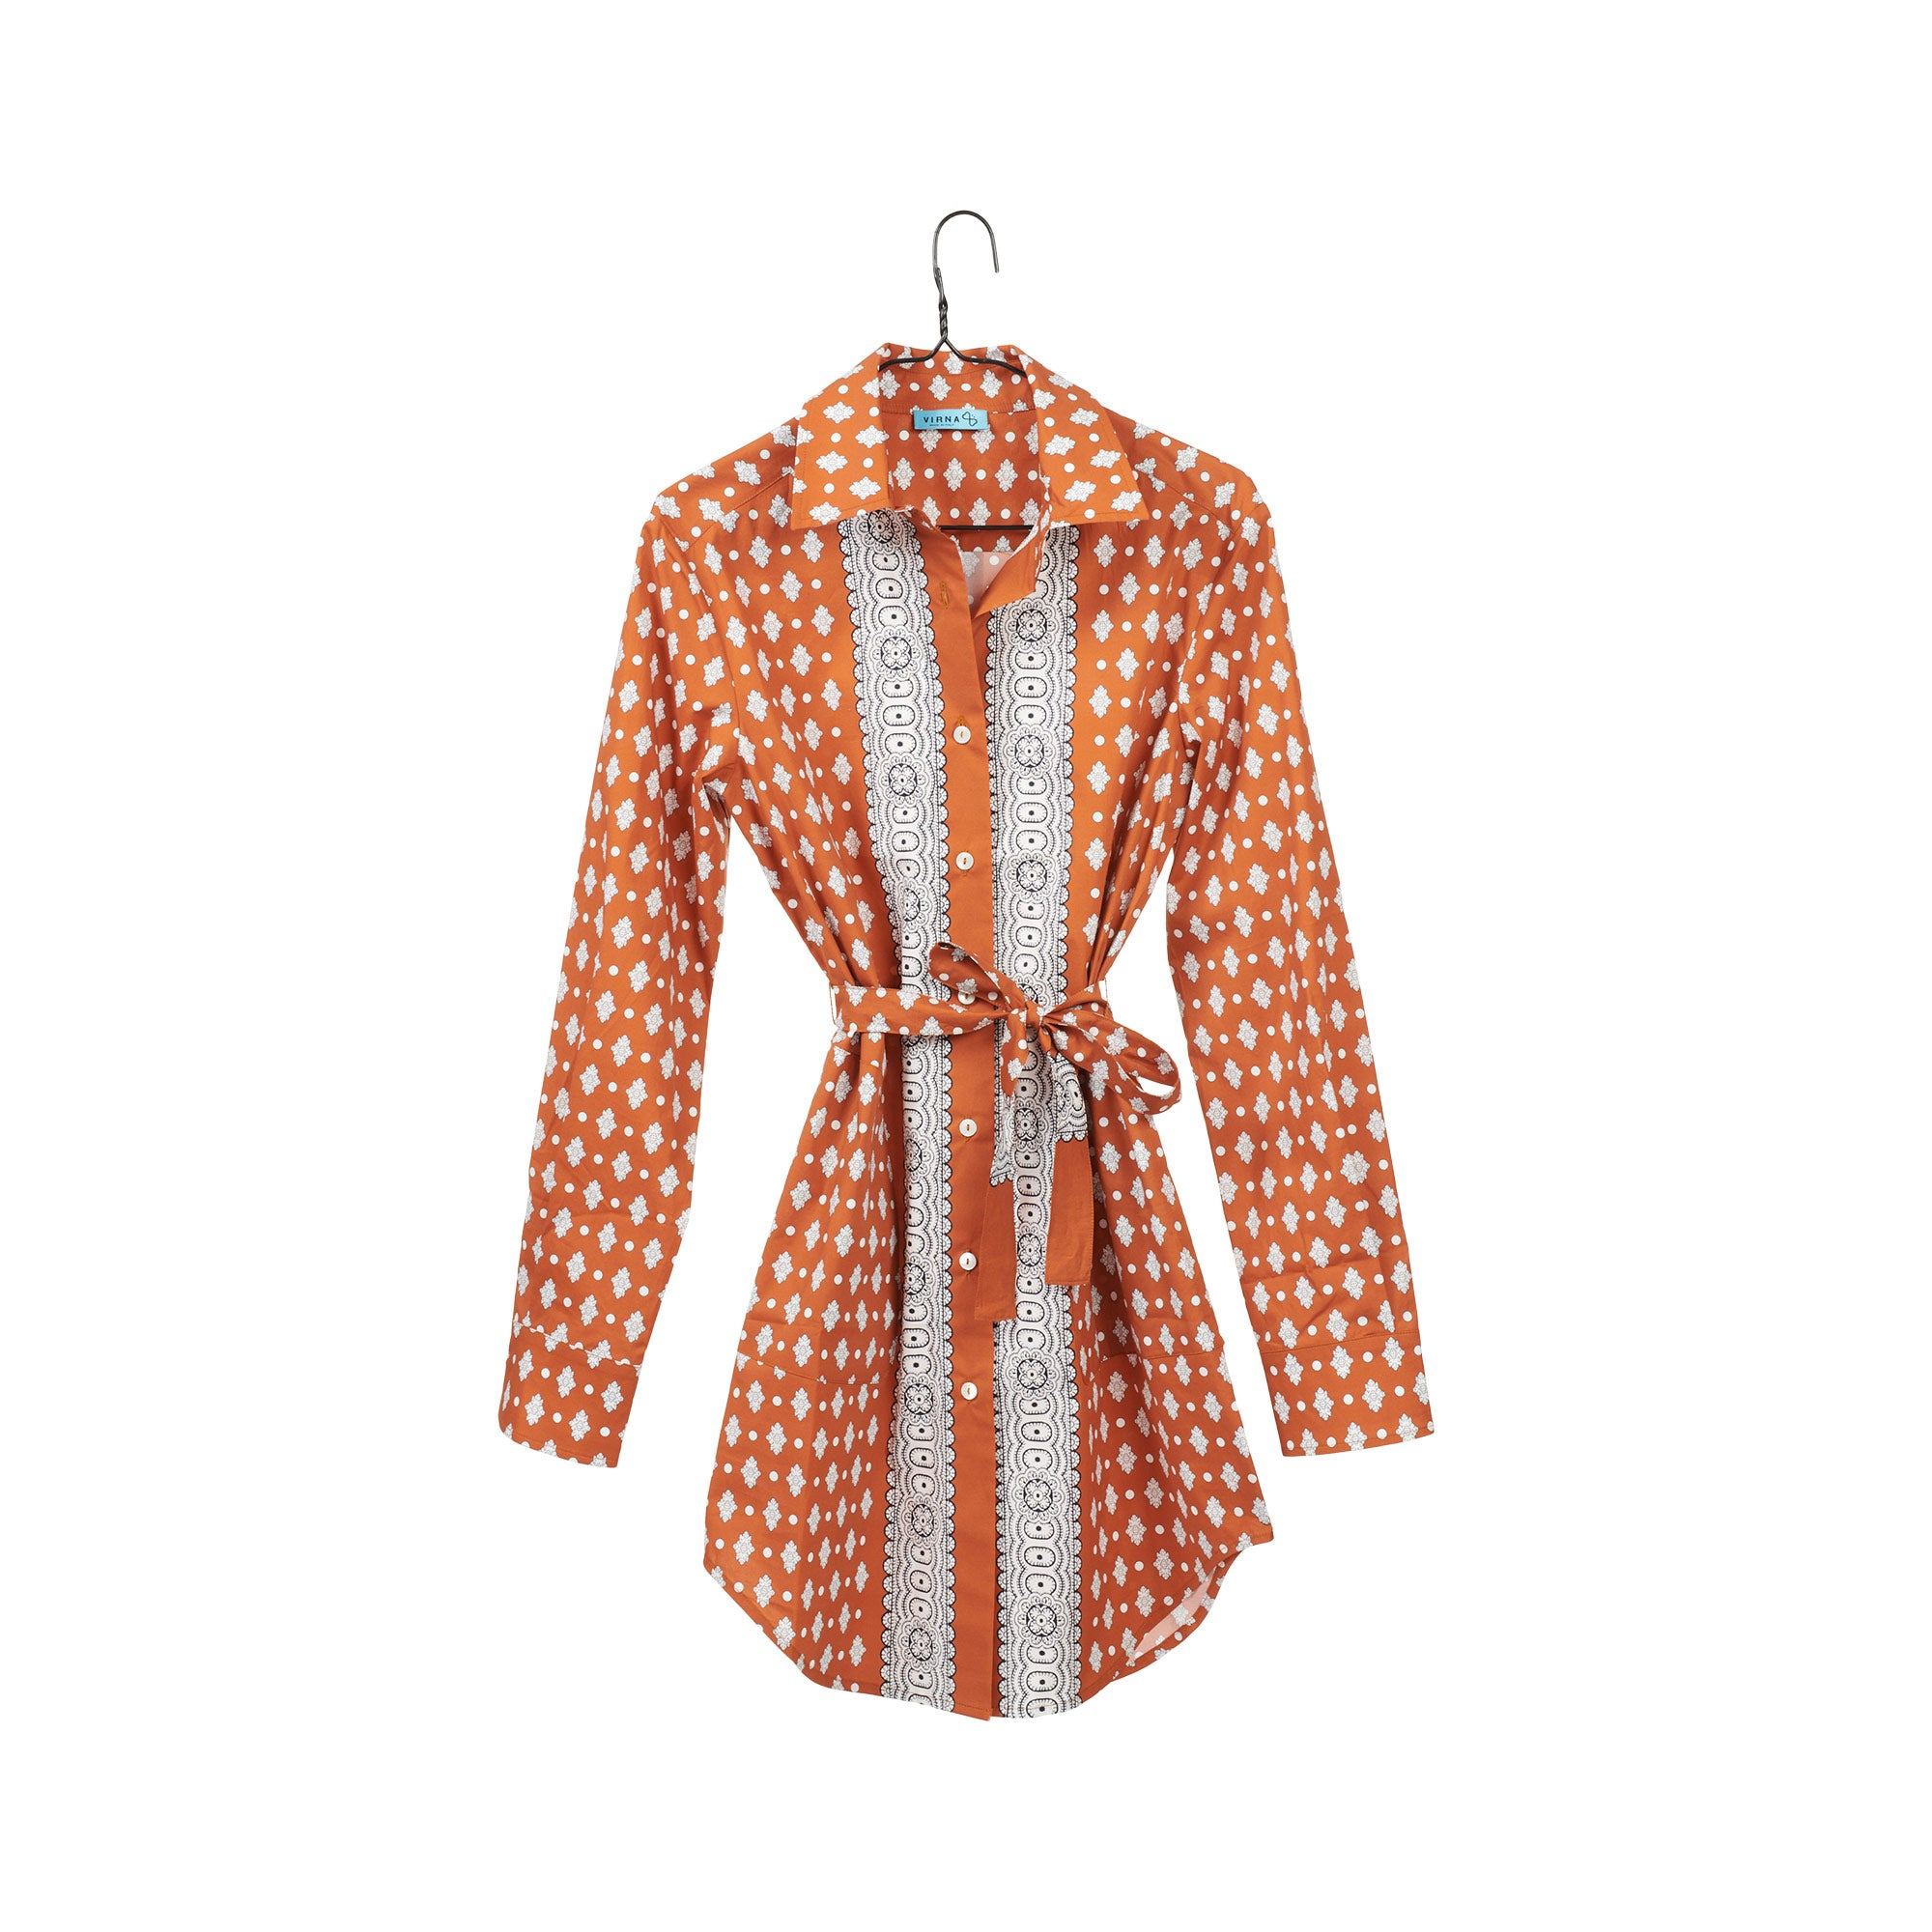 Elba Orange Shirtdress